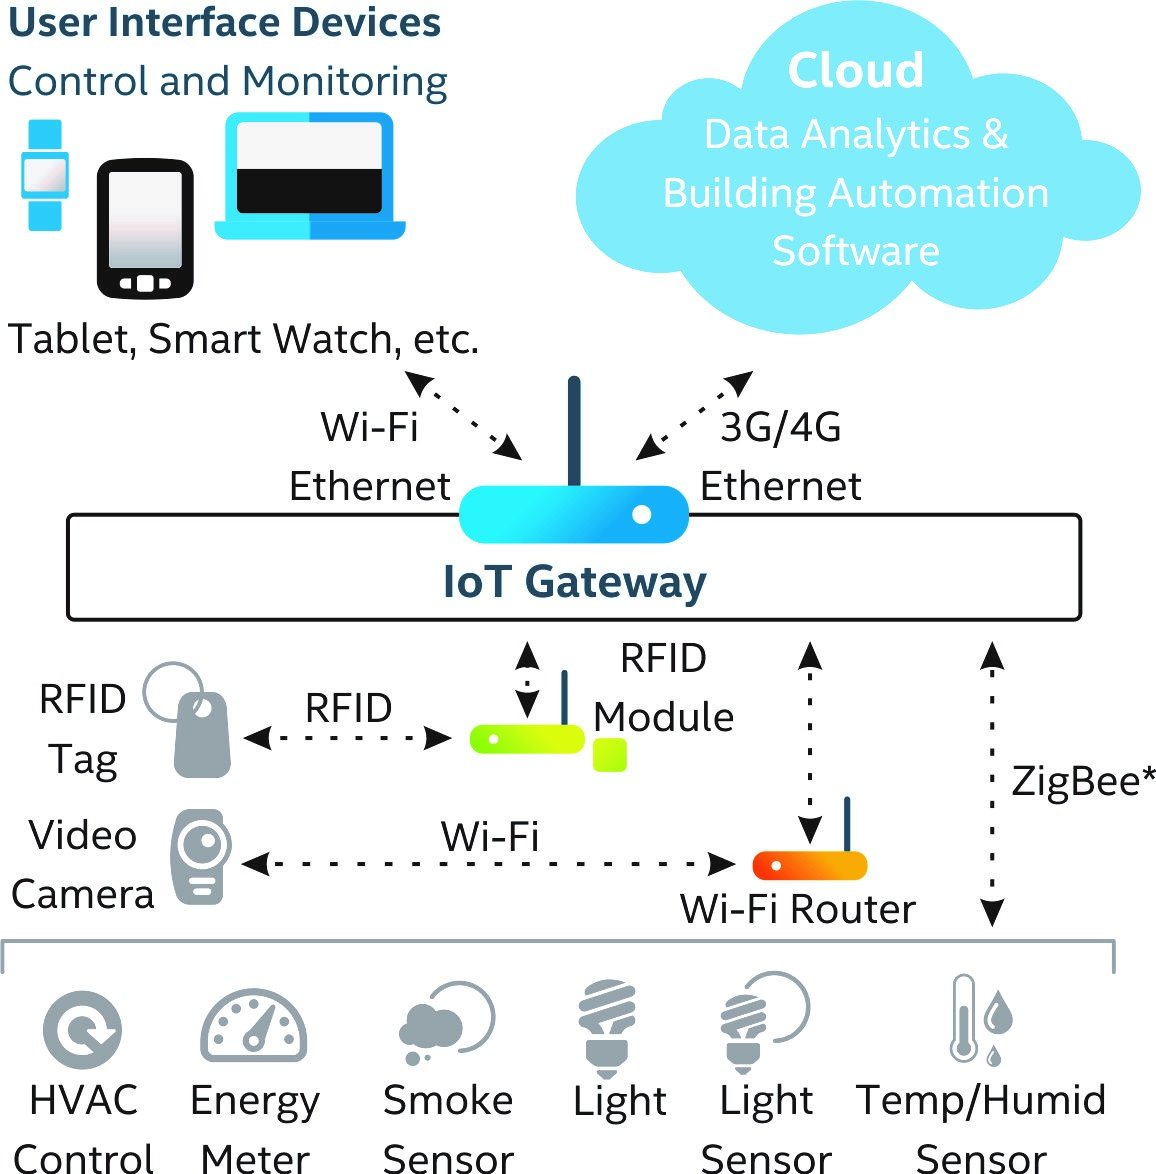 cisco fog computing ecosystem architecture and applications